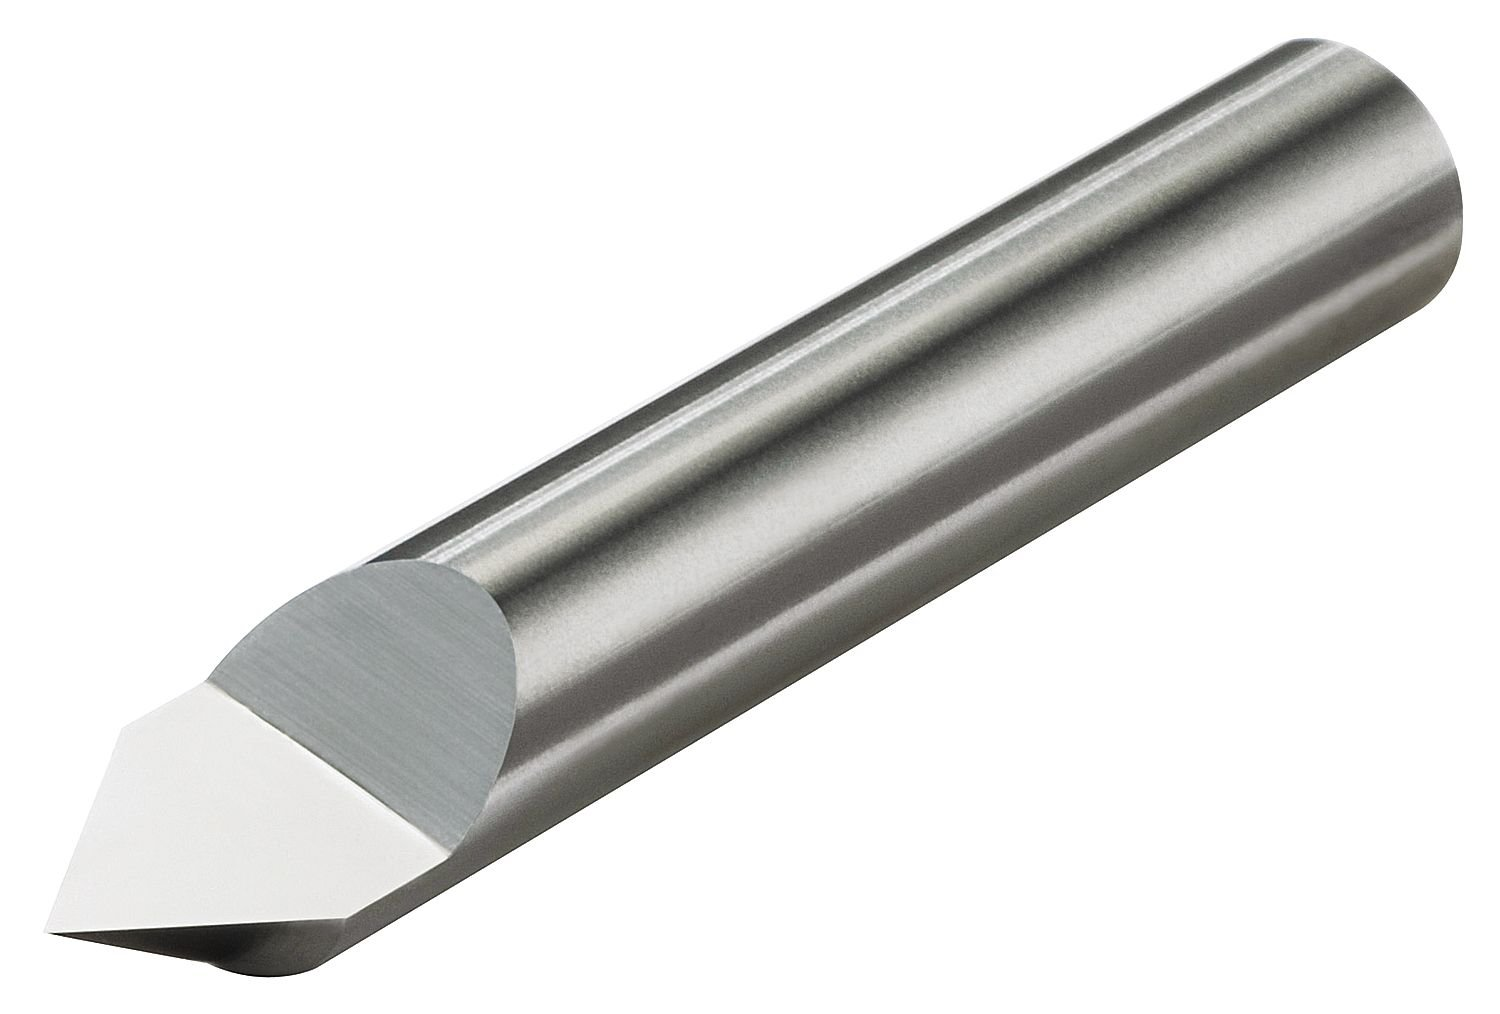 Micro 100 RTCM-030-1 Single Ended Split-End 30/° Included Angle Engraving Tool Metric Dimensions 38mm Overall Length 3mm Shank Diameter 7mm Split Length Solid Carbide Tool Right Hand Cut 0.10mm Offset Point